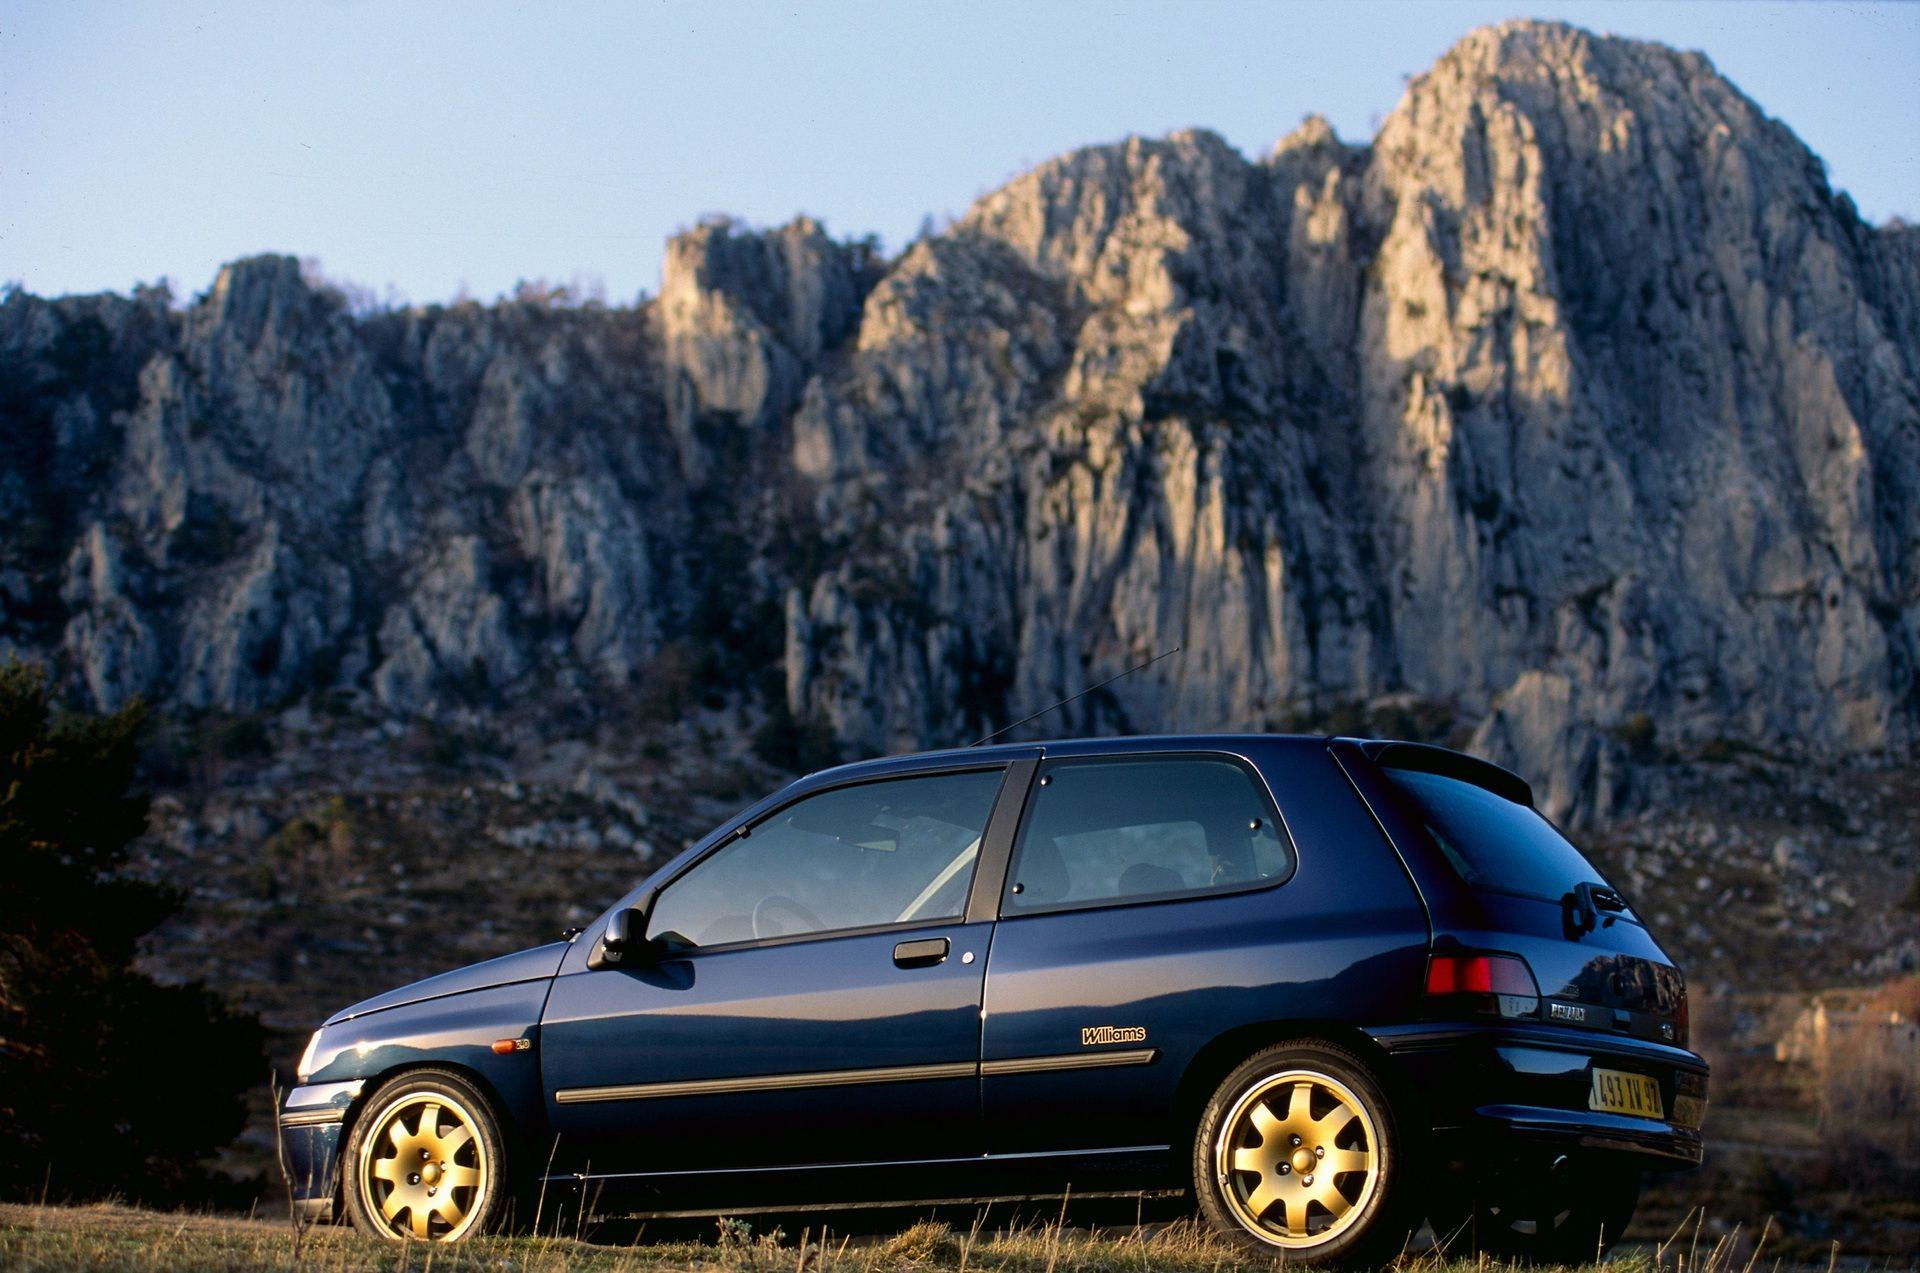 2020-30-years-of-Renault-CLIO-Renault-CLIO-I-1990-1999-11